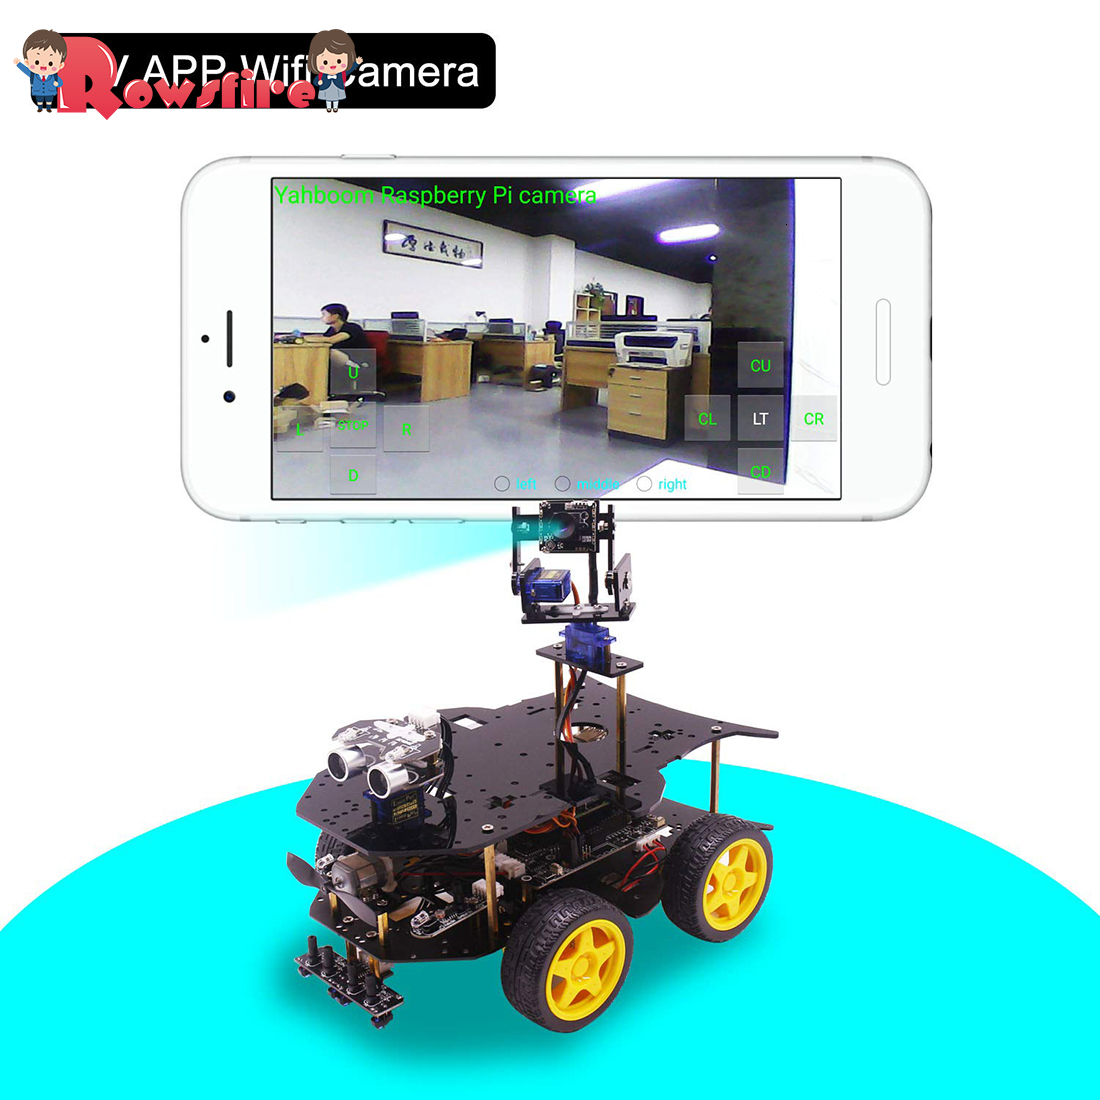 Bluetooth Ultimate Starter Kit Programmable Smart Robot Car With Camera 4WD Electronics Education DIY Stem Toy With Raspberry 4B